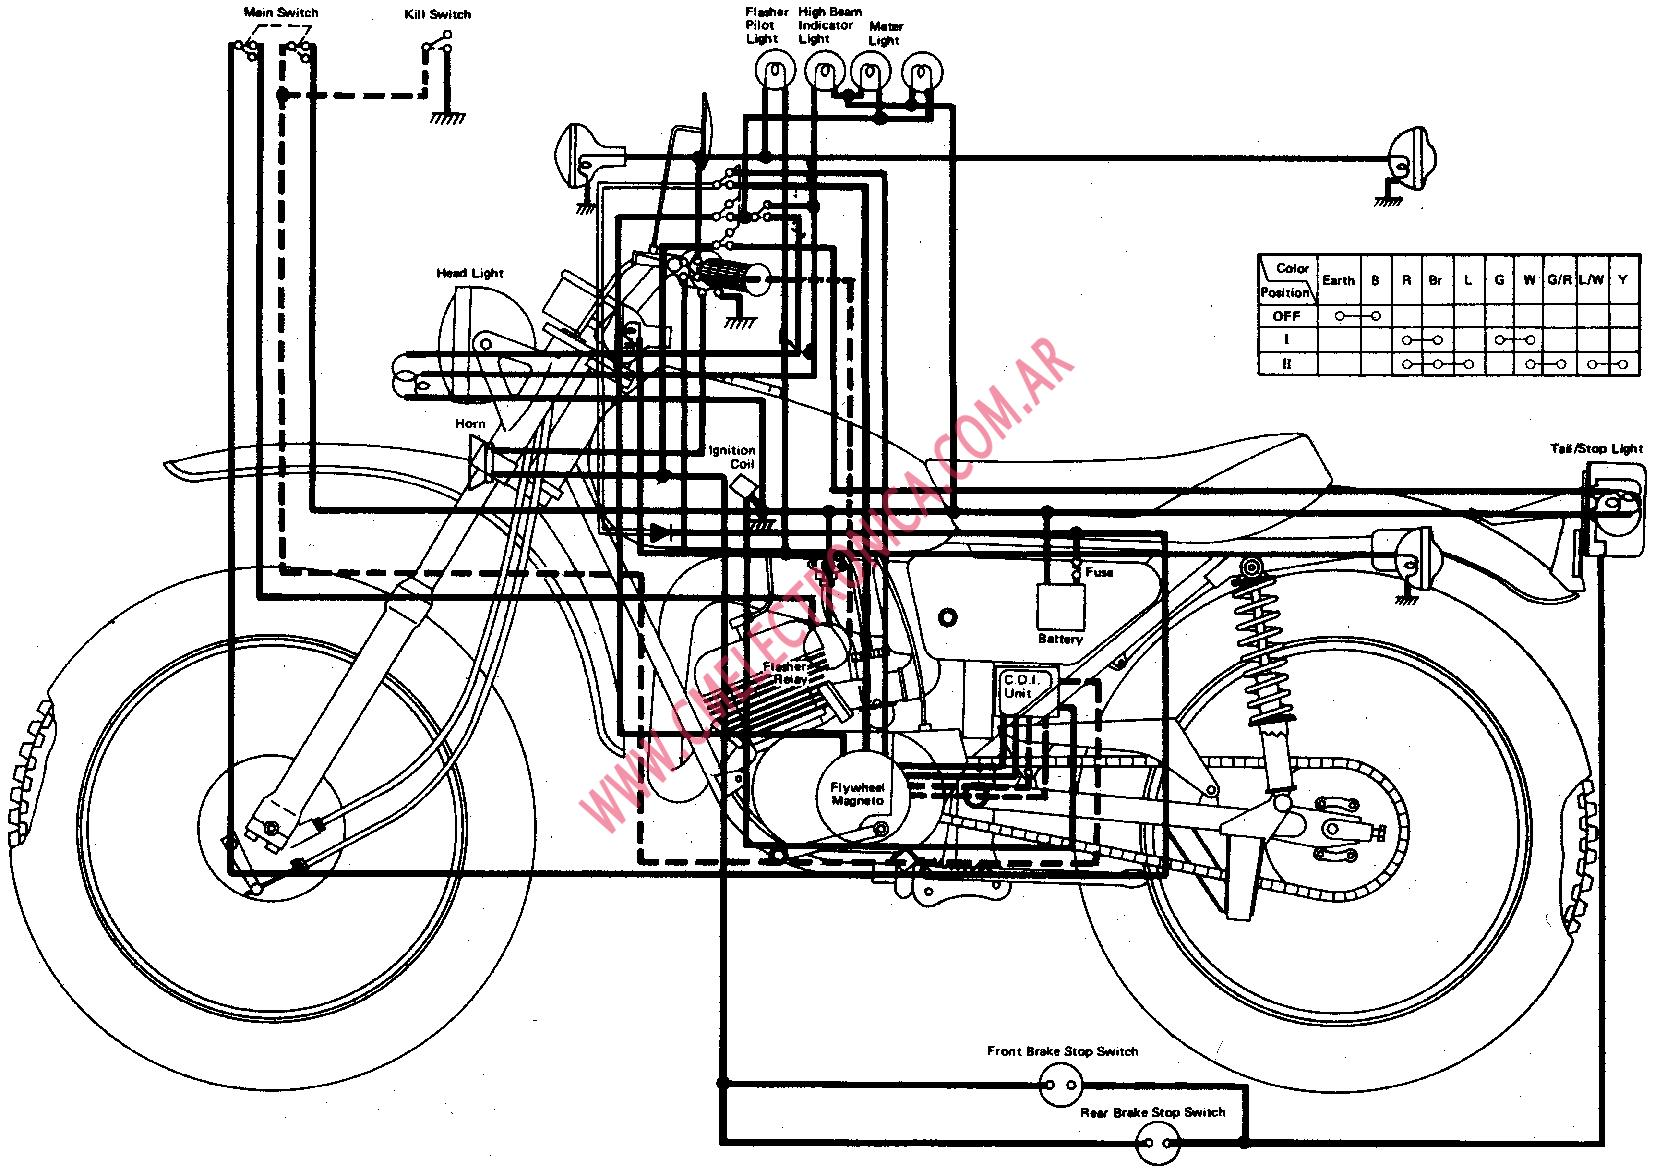 Suzuki Sp 400 Wiring, Suzuki, Free Engine Image For User